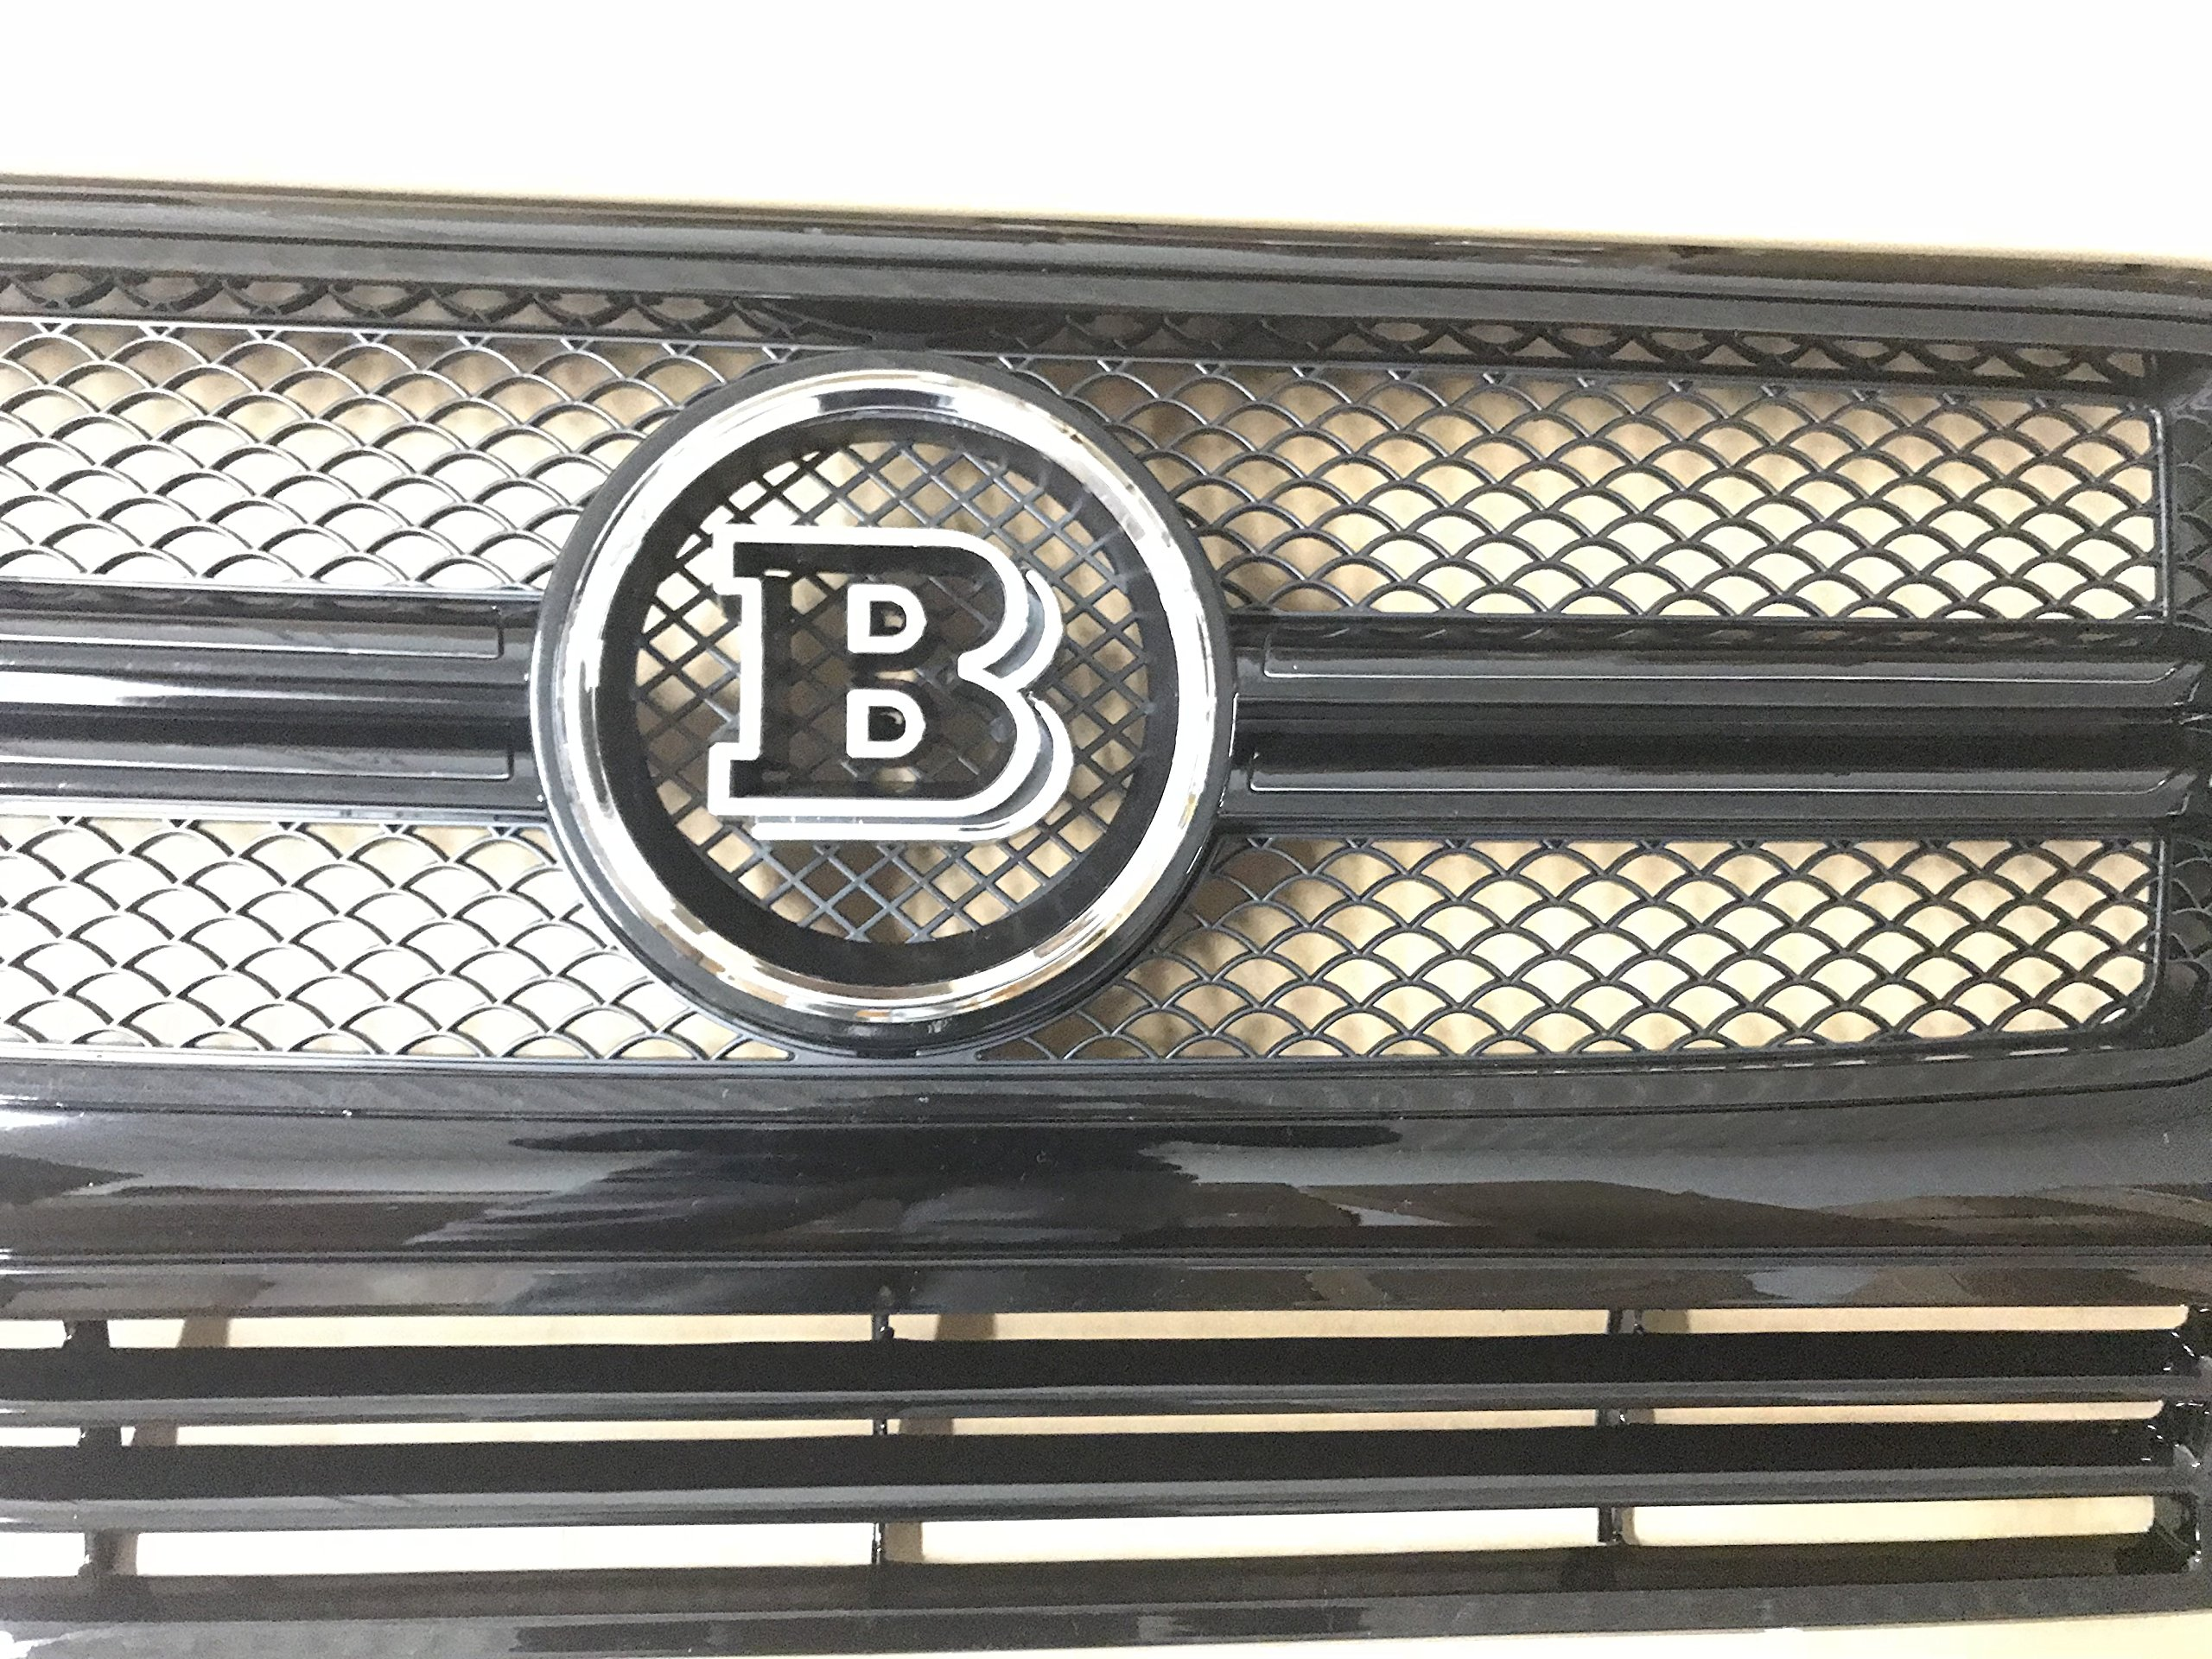 ALL BLACK G-Wagon W463 BRABUS-Style G65 W463 Conversion Grille Complete Fit For Mercedes-benz G500 G550 G63 Grille (Chrome B) by Conversion Grille Replacement (Image #3)